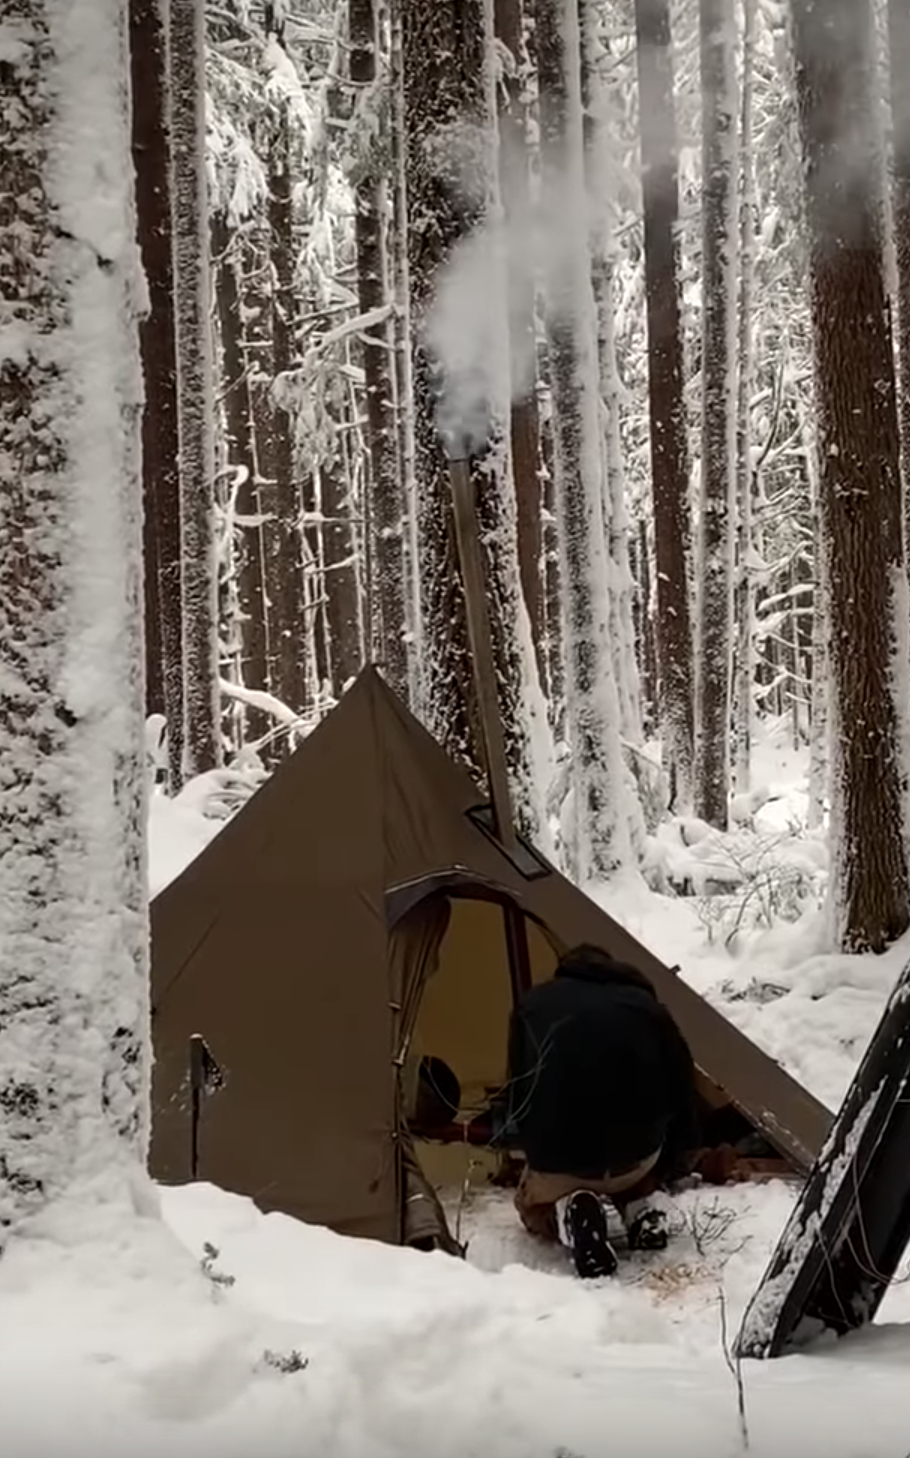 Winter Camping Ghost Forest Wood Stove Tent Video | Tent ...